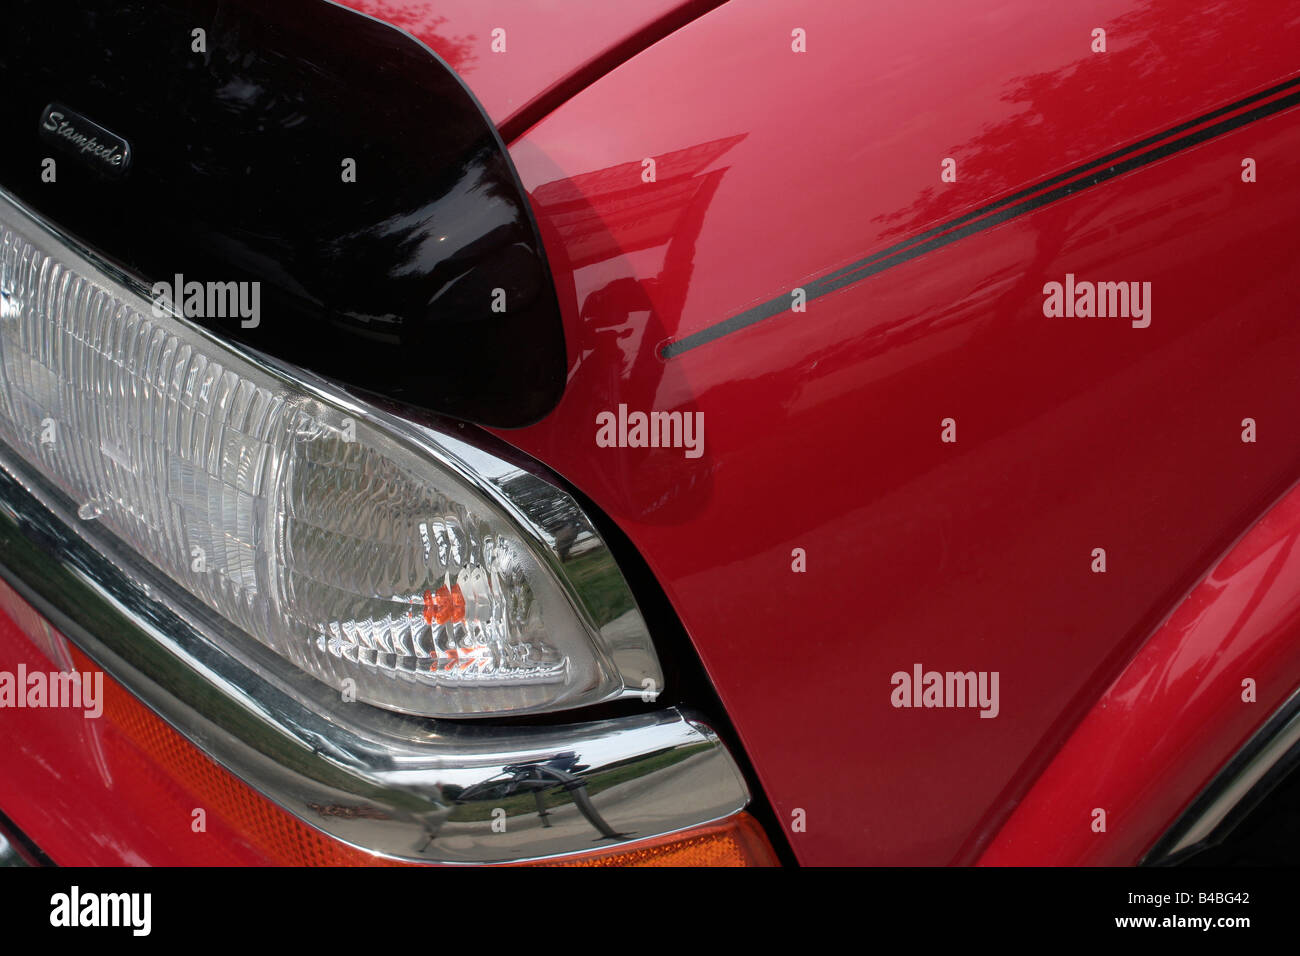 Car SUV body and headlight detail - Stock Image